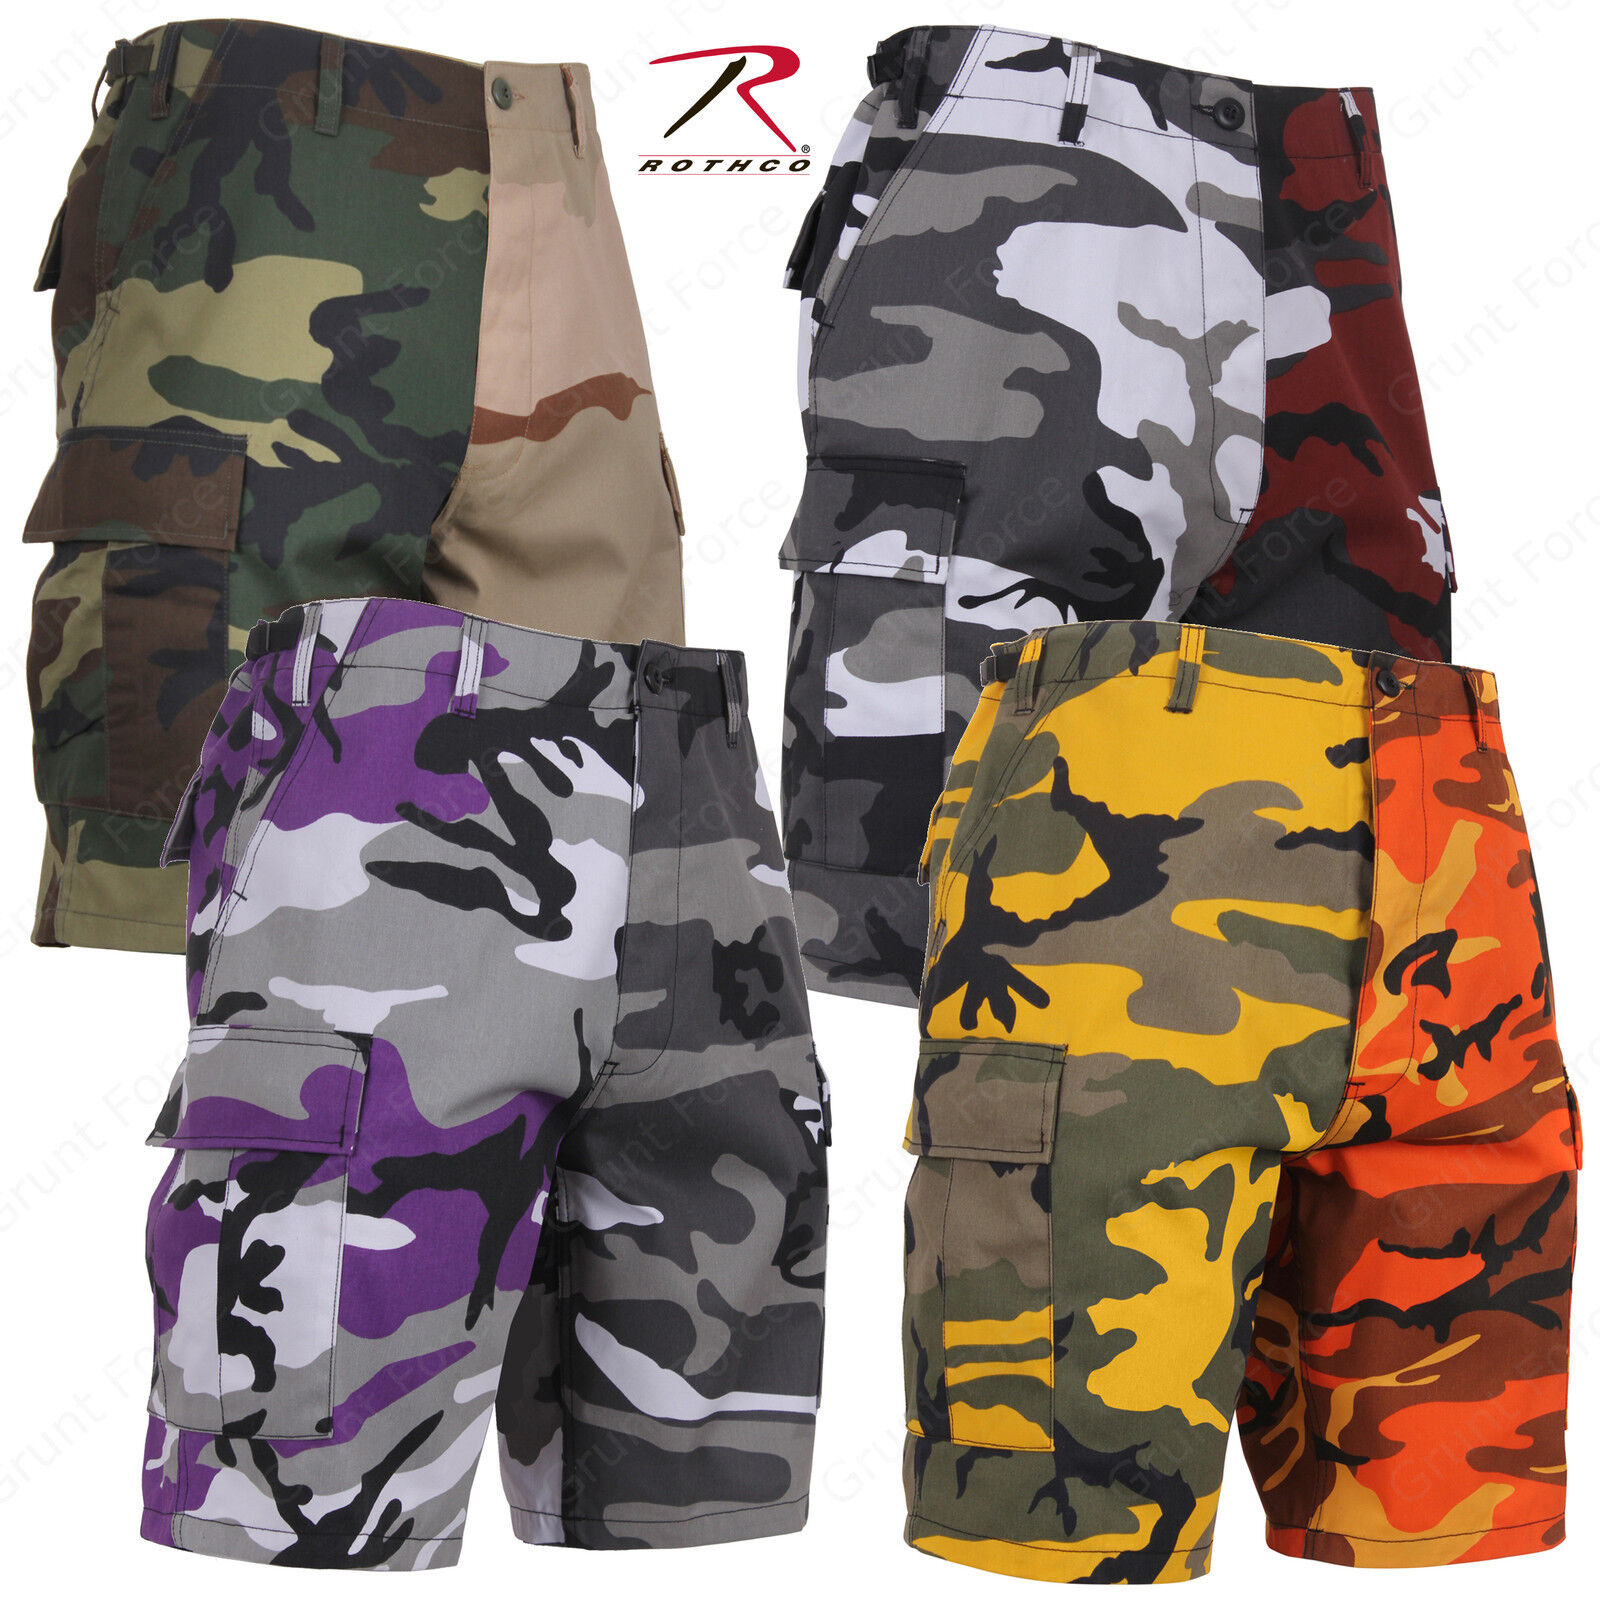 redhco Two-Tone Camo Shorts - Military Style Tactical B.D.U. Shorts